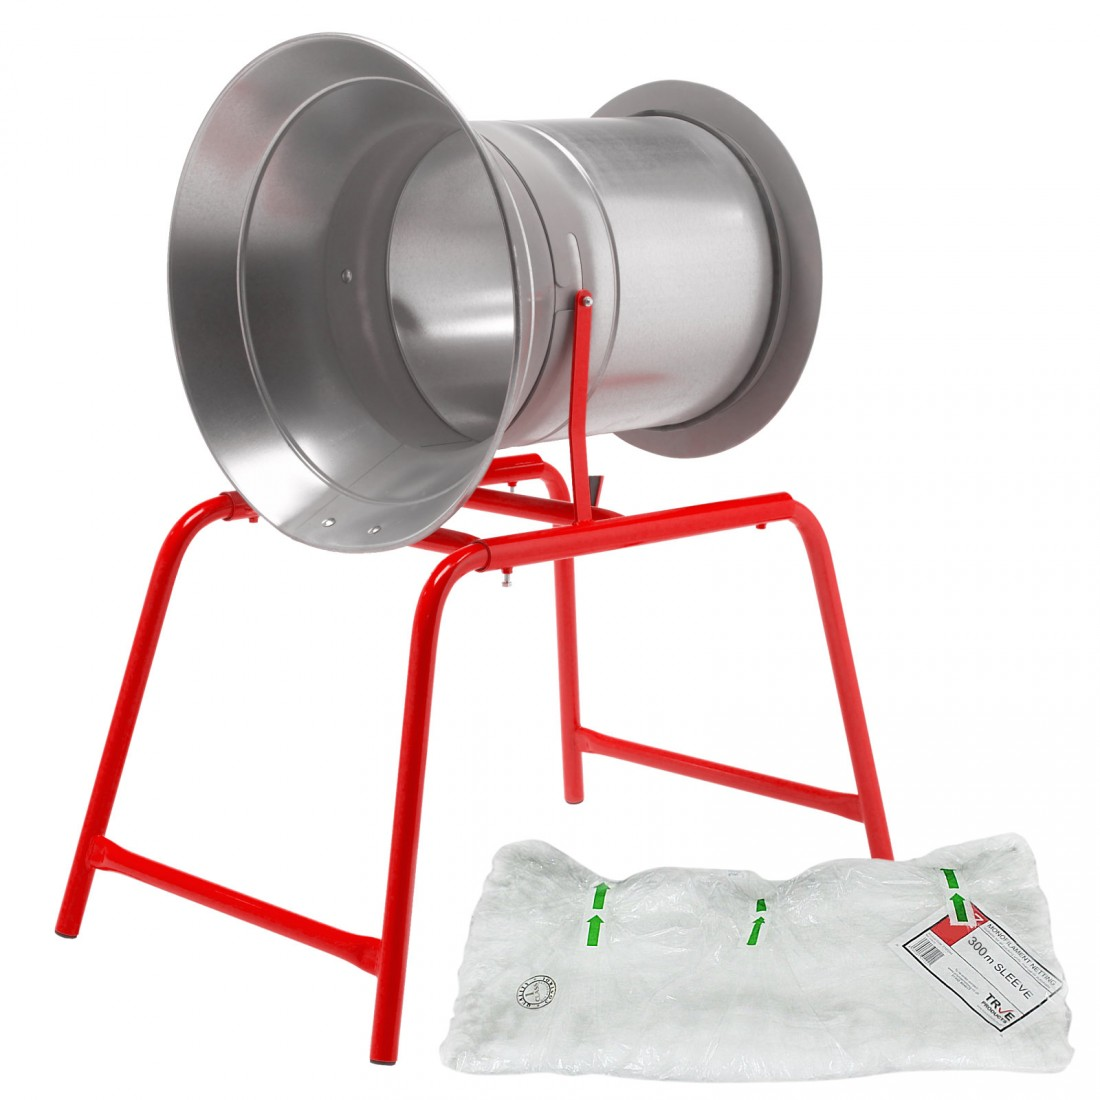 True Christmas Tree Netting Starter Kit - 34cm, 45cm or 55cm